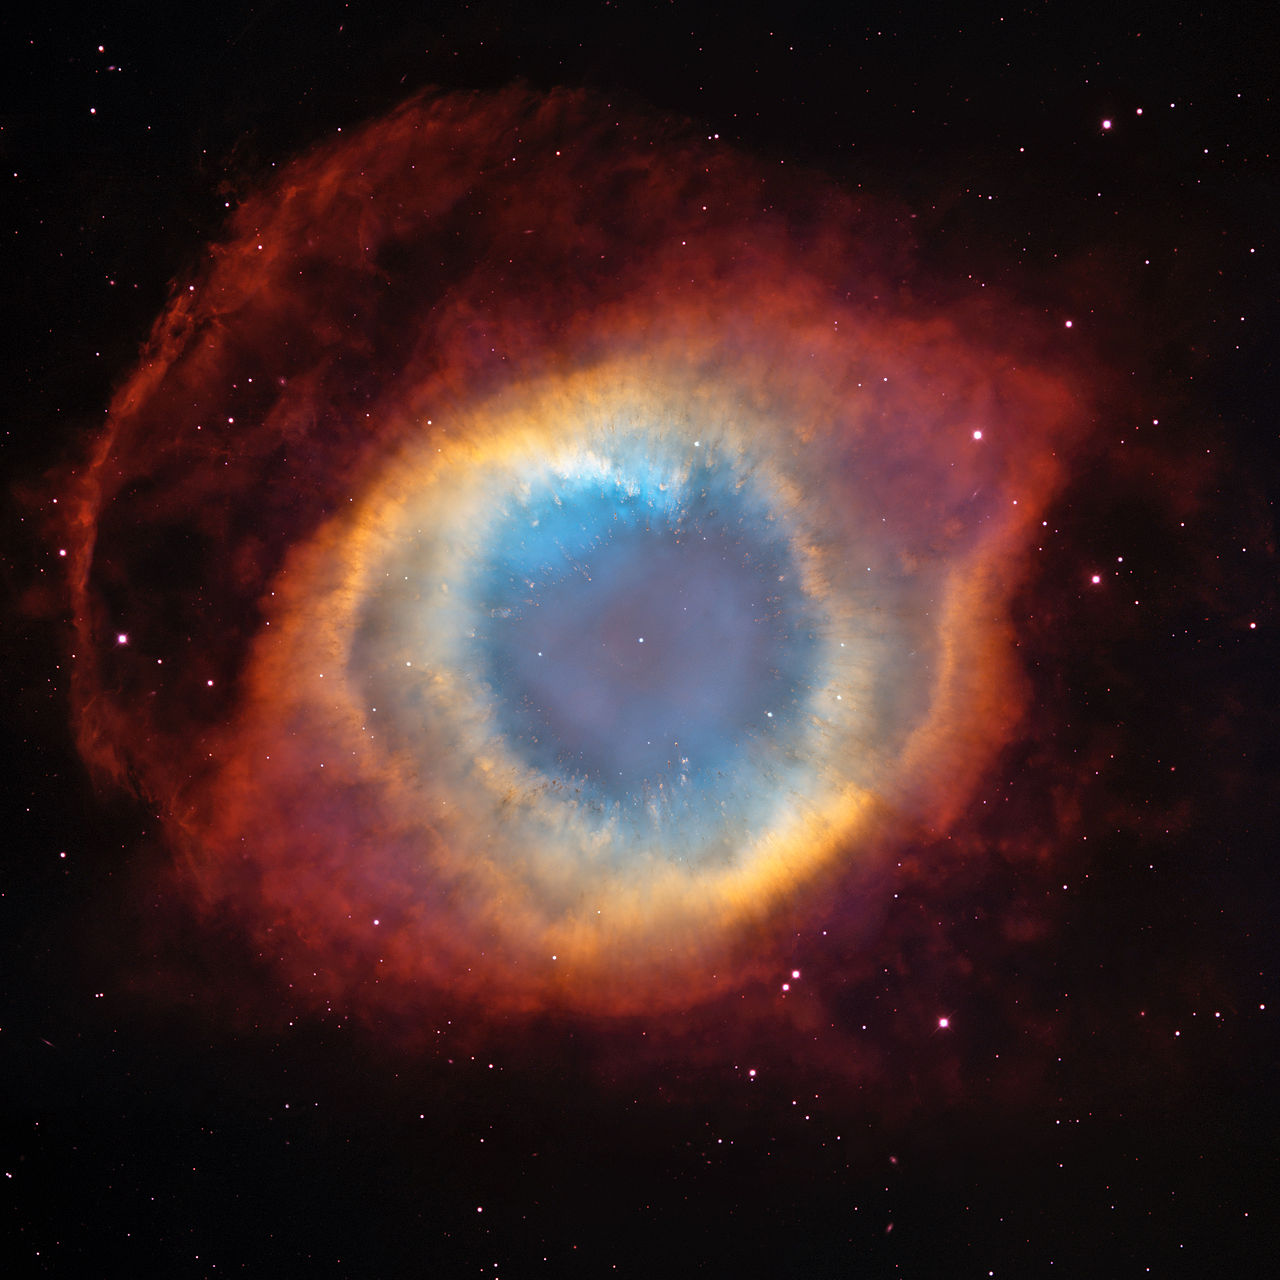 The Eye of God - NGC 7293  seen through several visible filters by  Hubble Space Telescope .